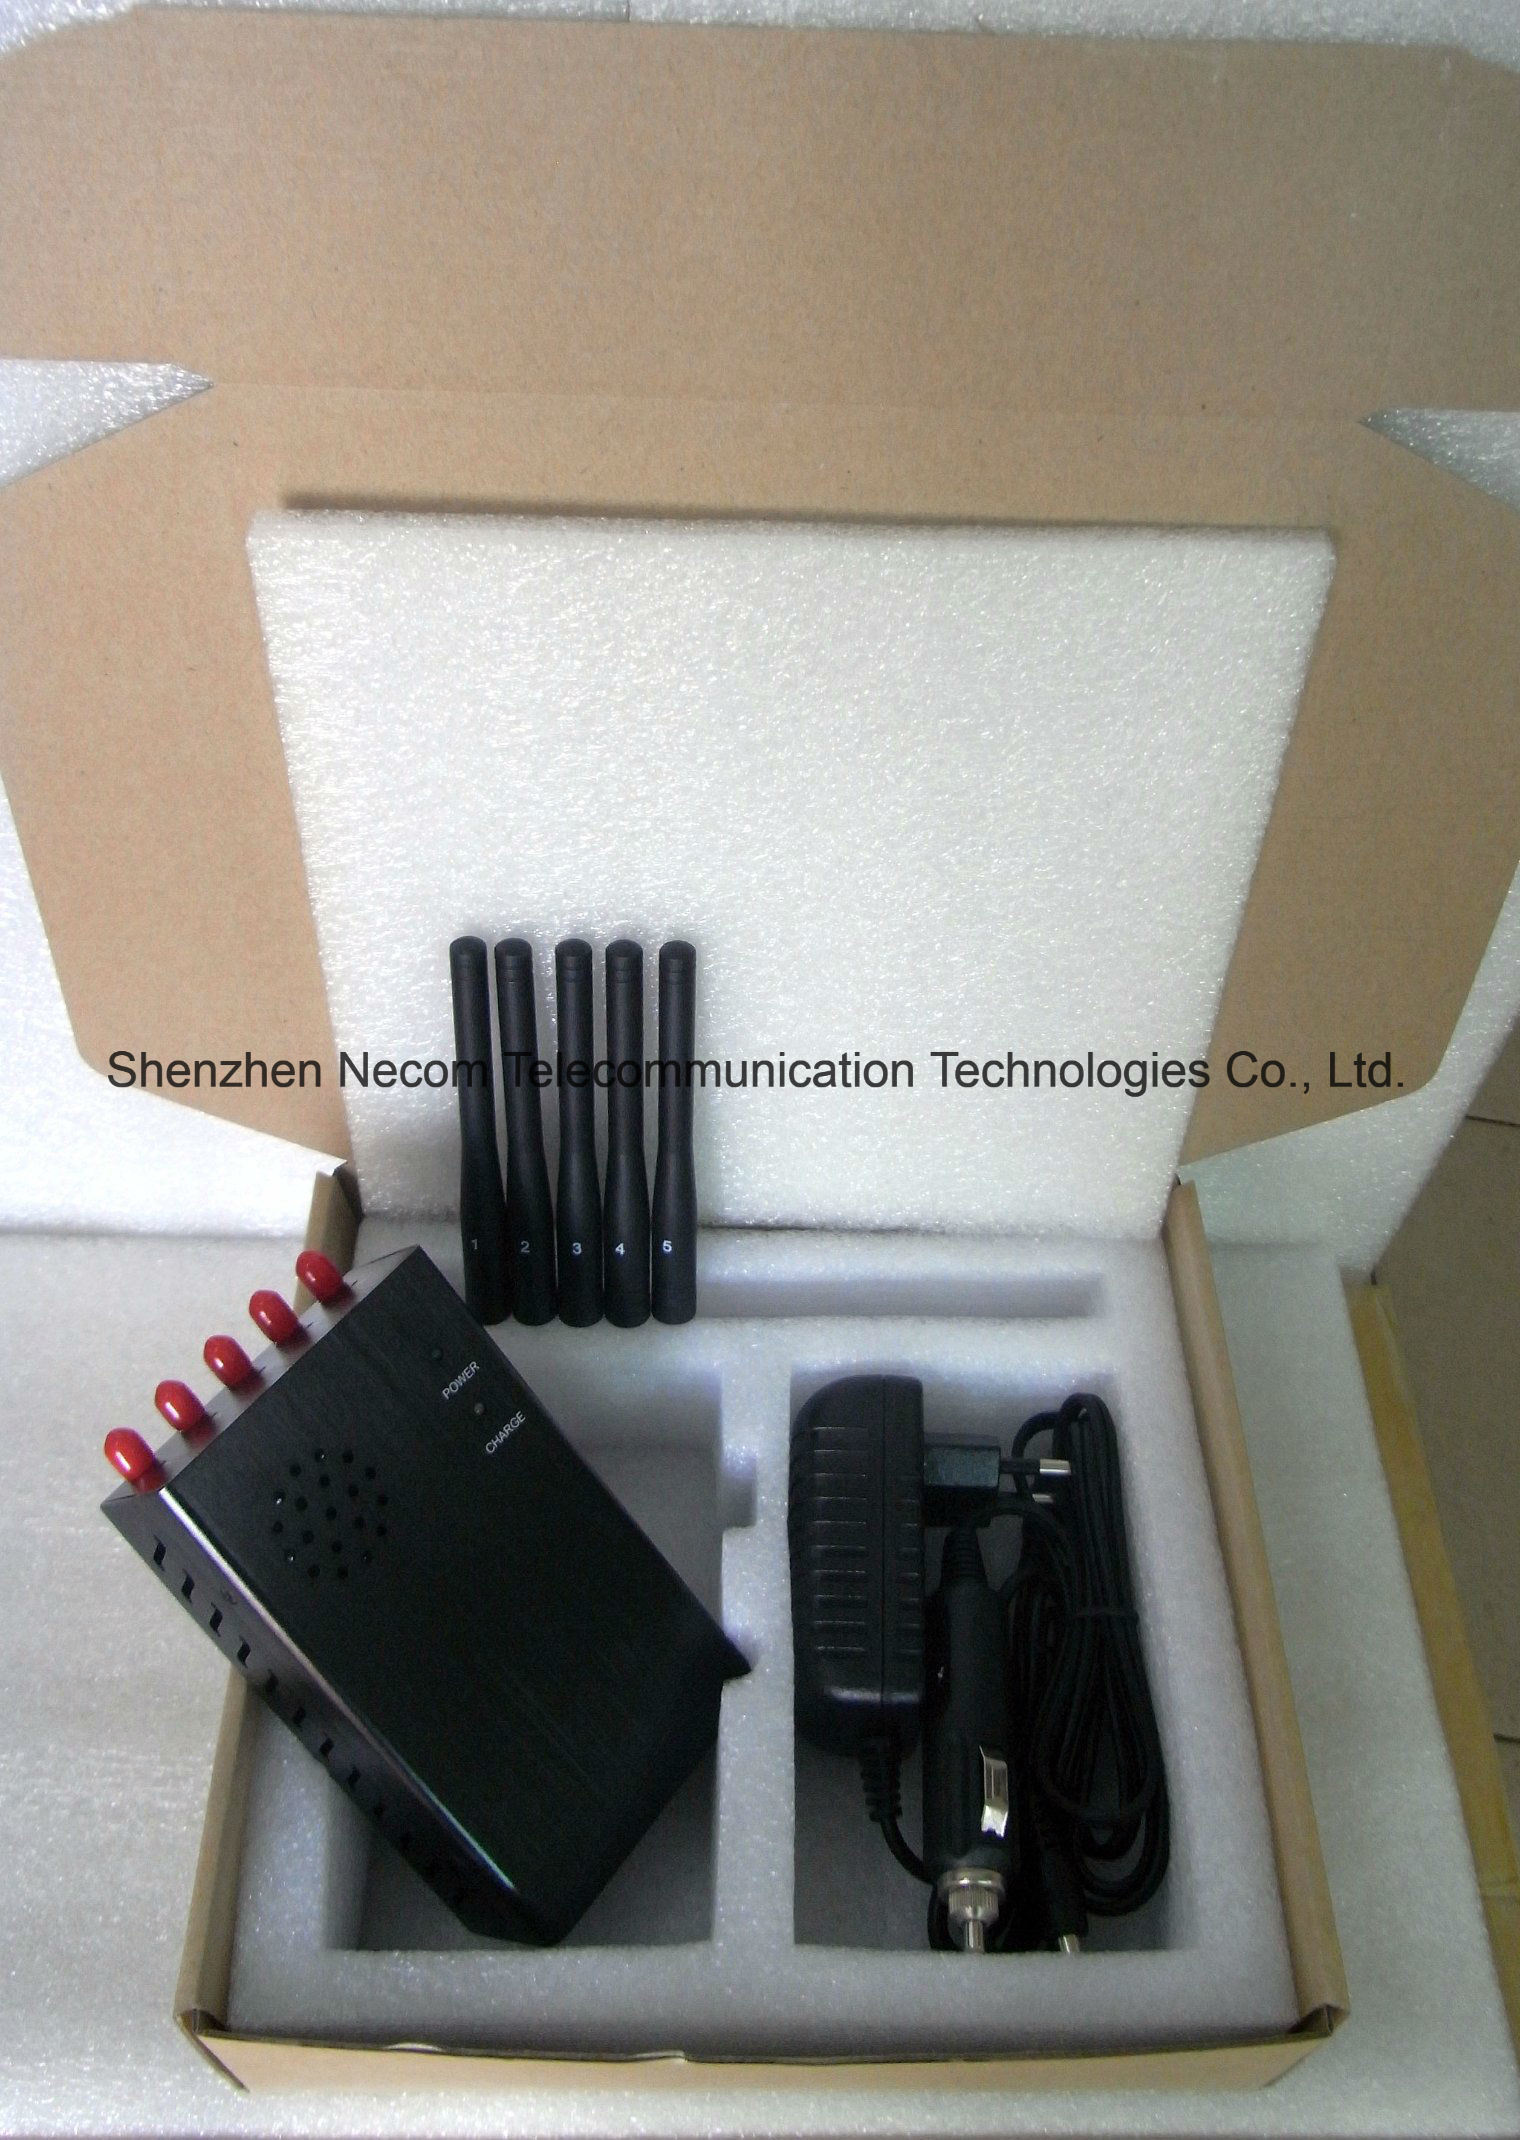 mobile phone jammer wikipedia - China 2g+3G+Gpsl1+Lojack 5 Antennas Signal Blockers - China 2g+3G+Gpsl1+Lojack 5 Antennas Signal Blockers, 5 Band Signal Jammers